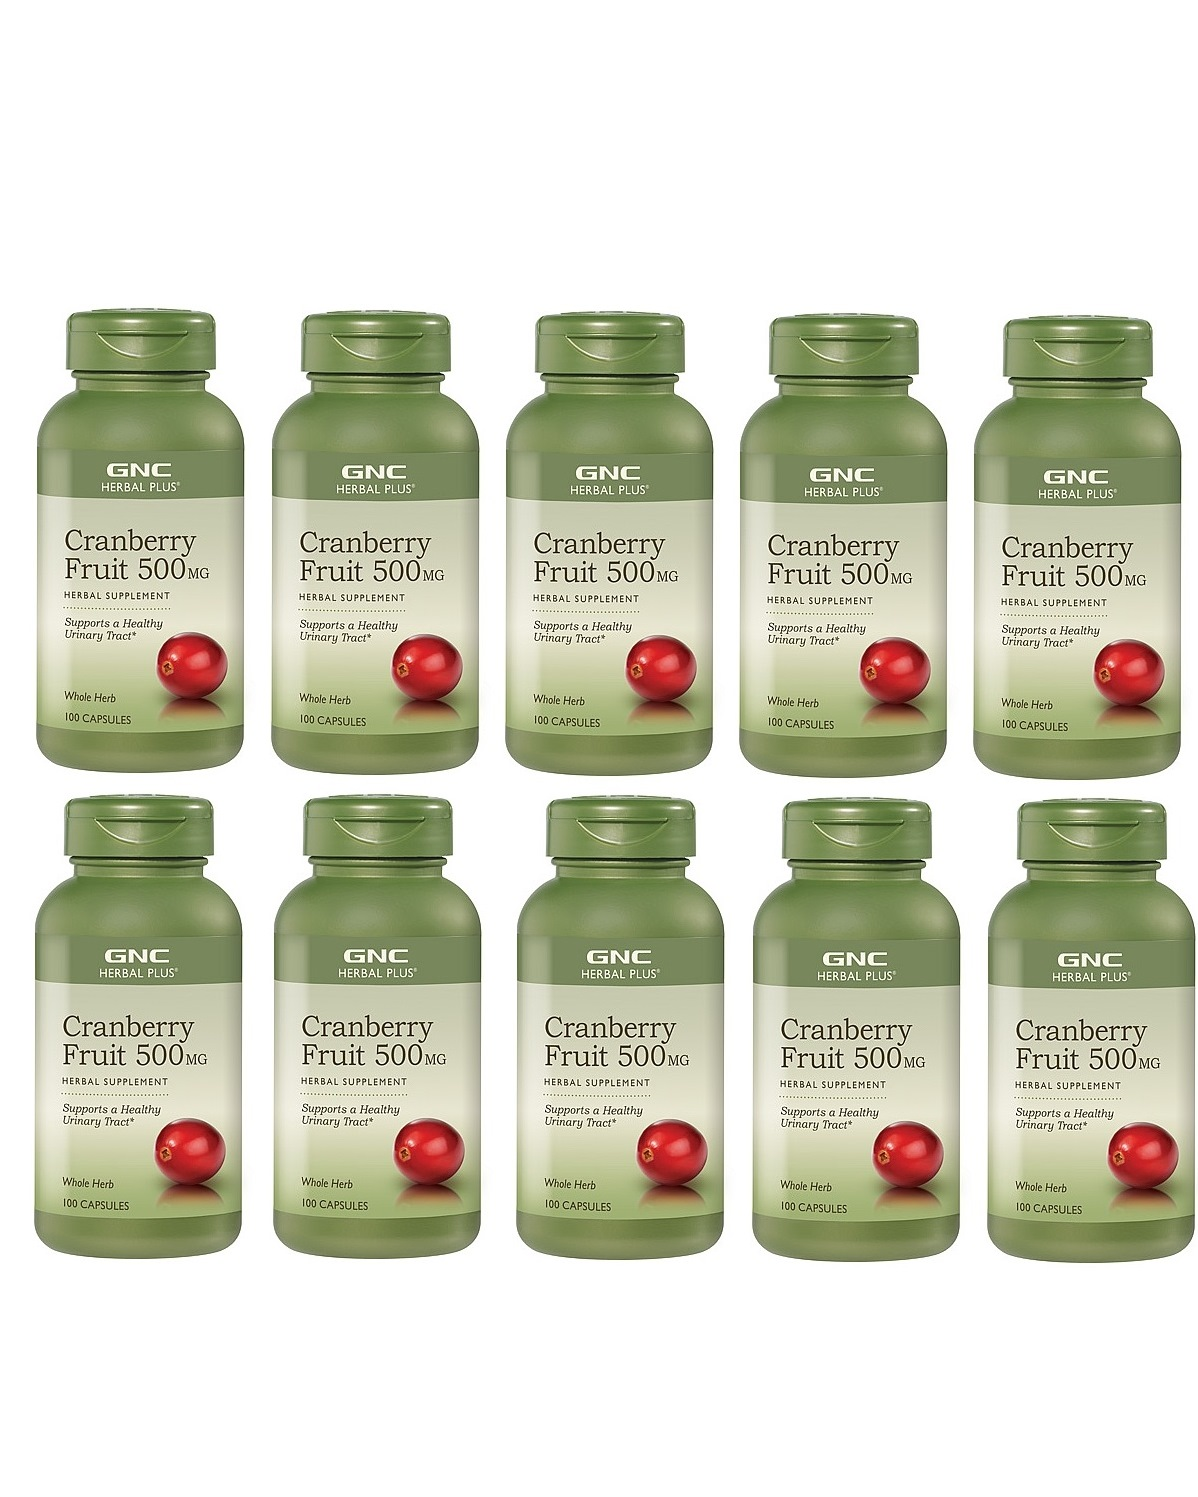 GNC Herbal Plus Cranberry, 500mg, 100 Capsules 10pk